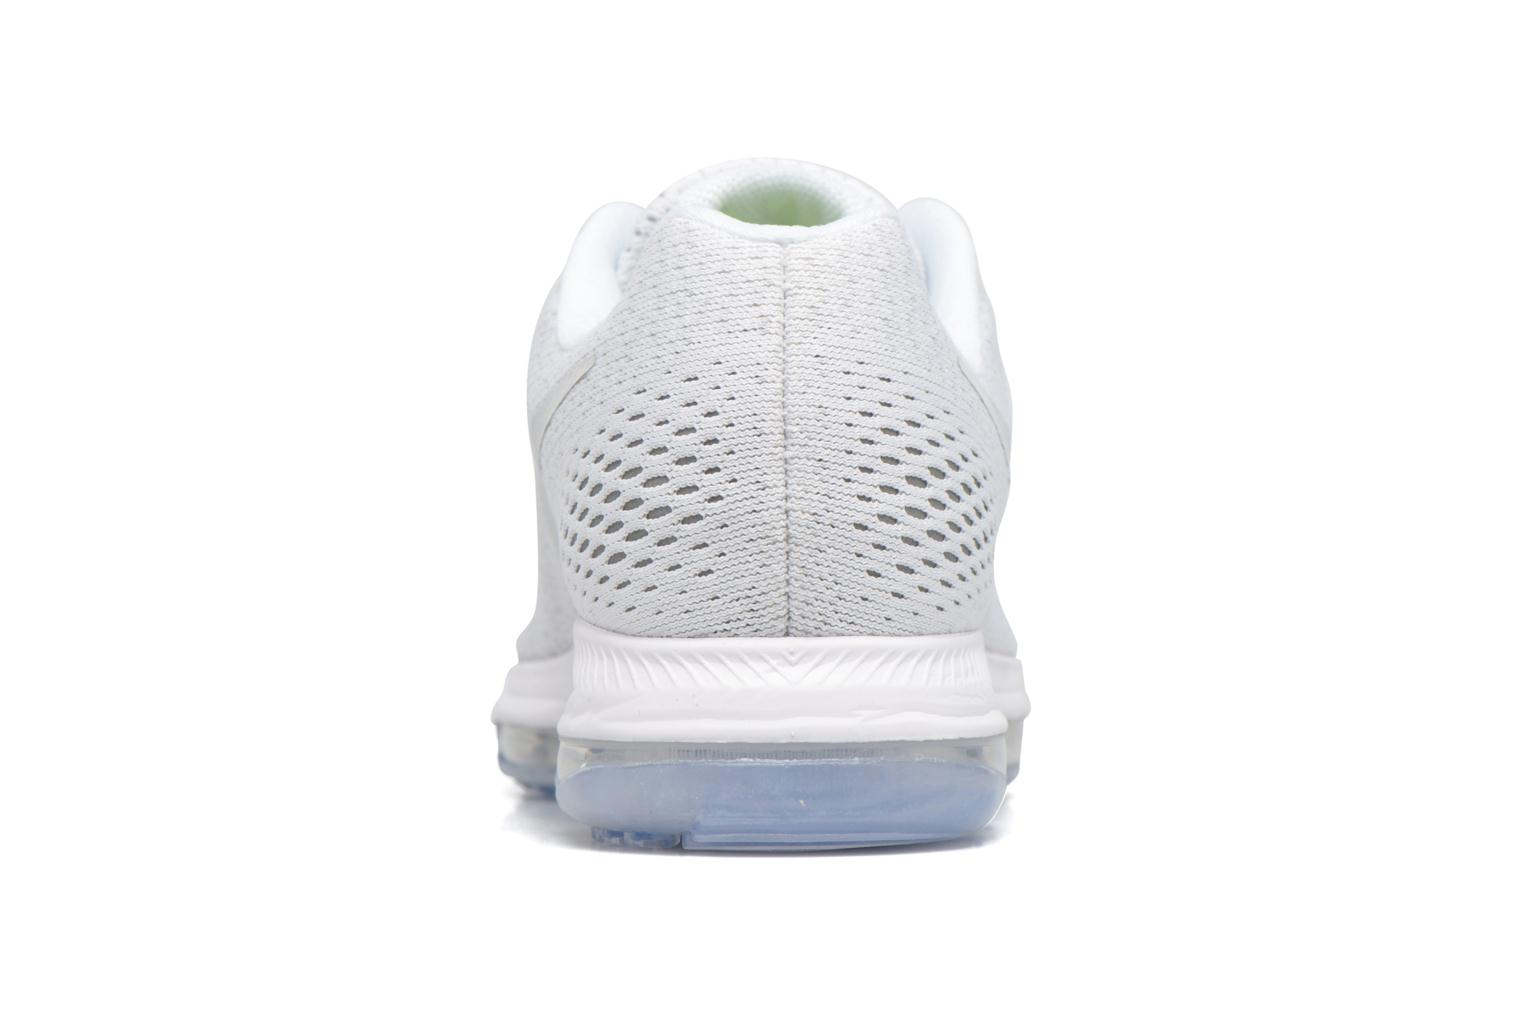 Zapatillas de deporte Nike Wmns Nike Zoom All Out Low Blanco vista lateral derecha